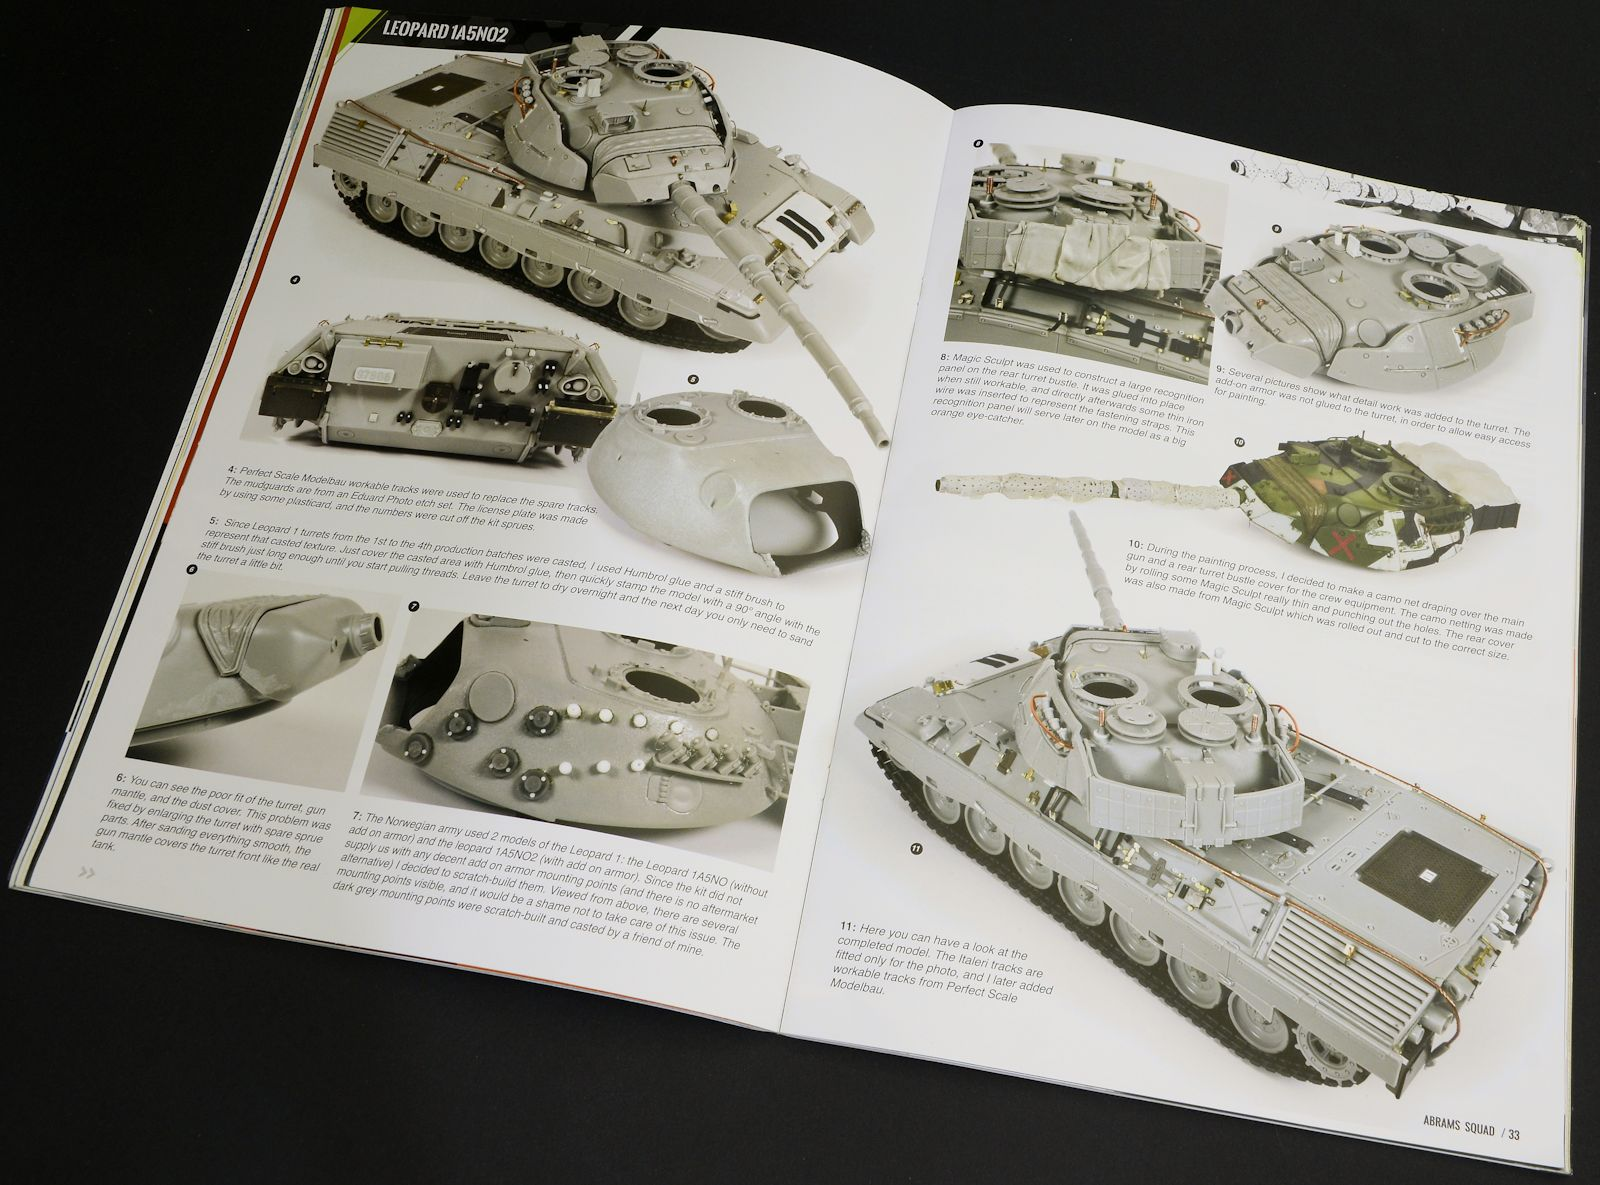 The Modelling News: We Review Abrams Squad's Number #9